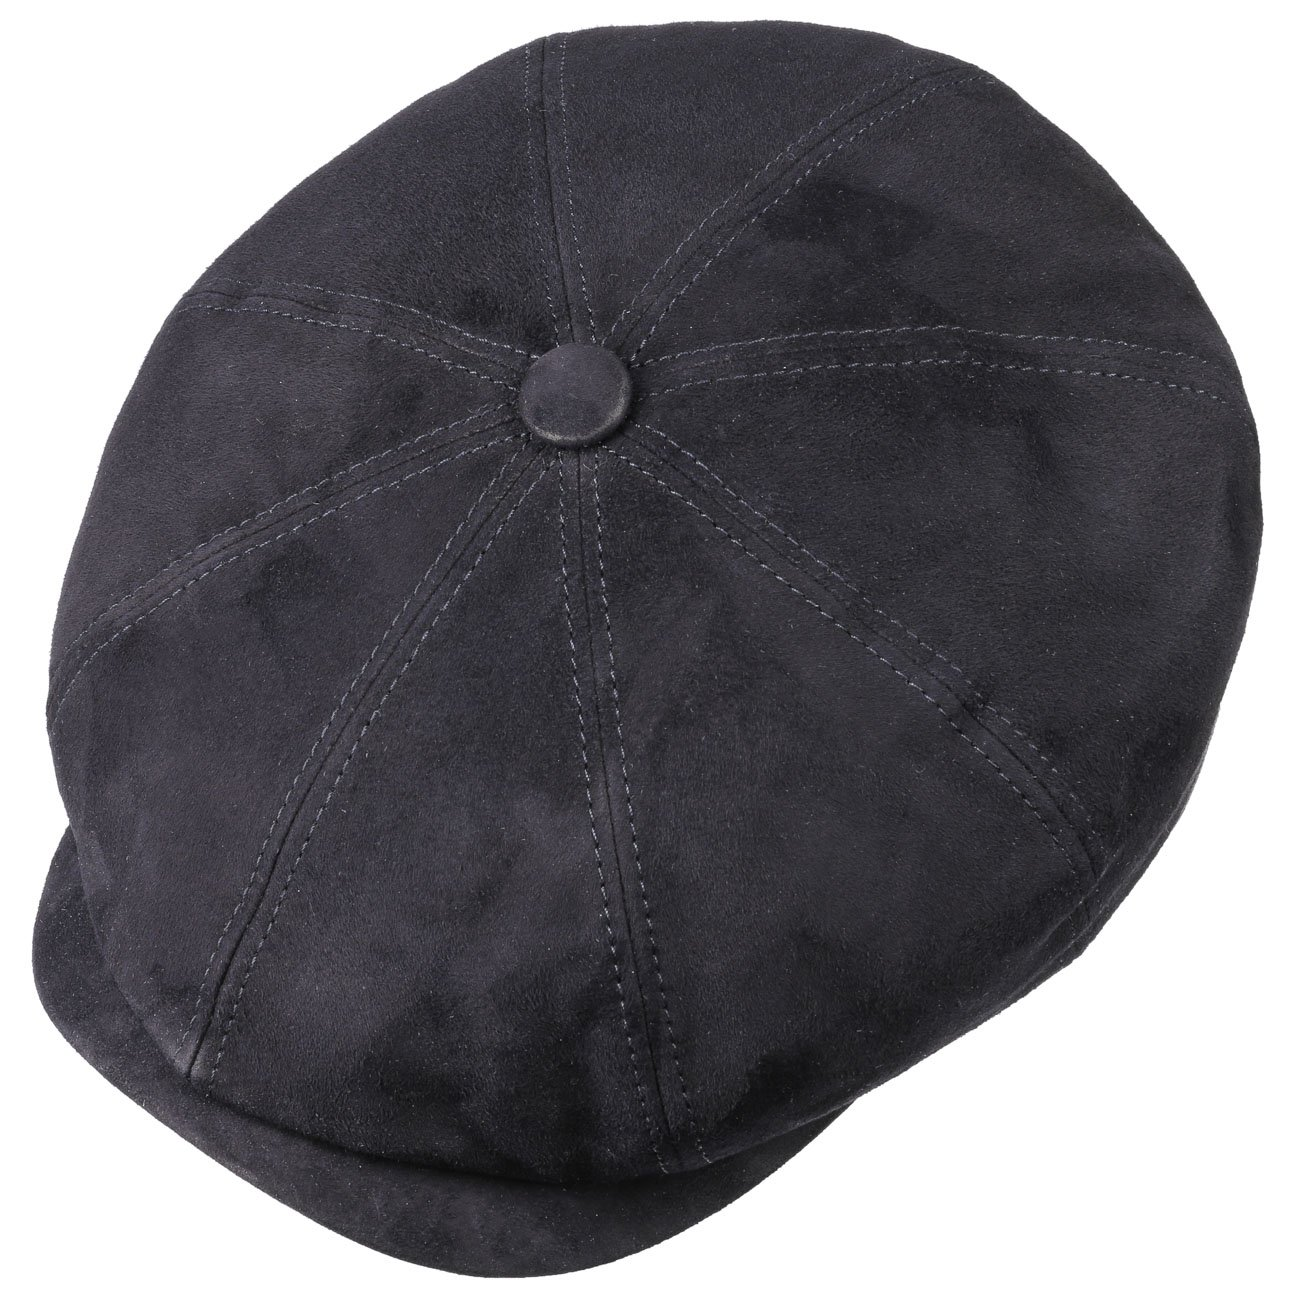 Stetson Hatteras Goat Suede Flat Cap Men Made in Germany Men/´s Winter caps hat with Peak Lining Summer-Winter